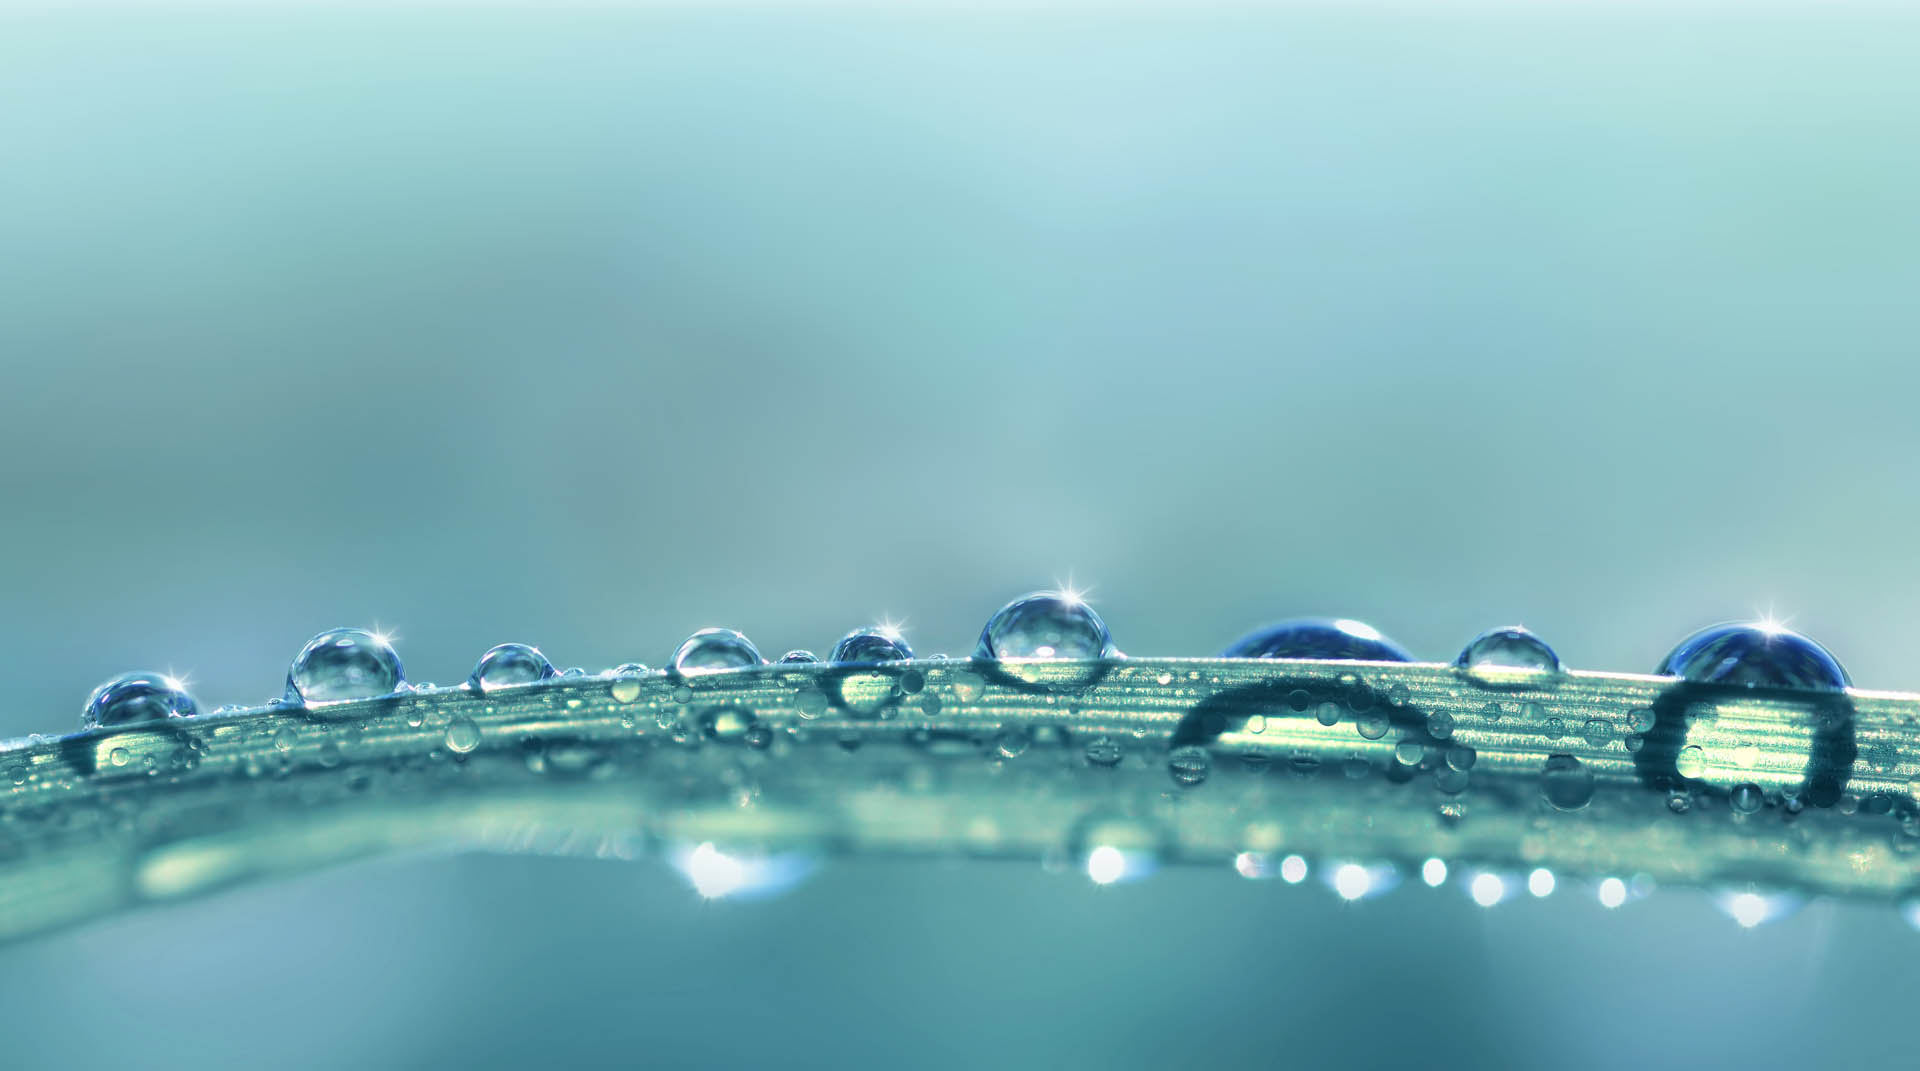 Mindfulness water droplets